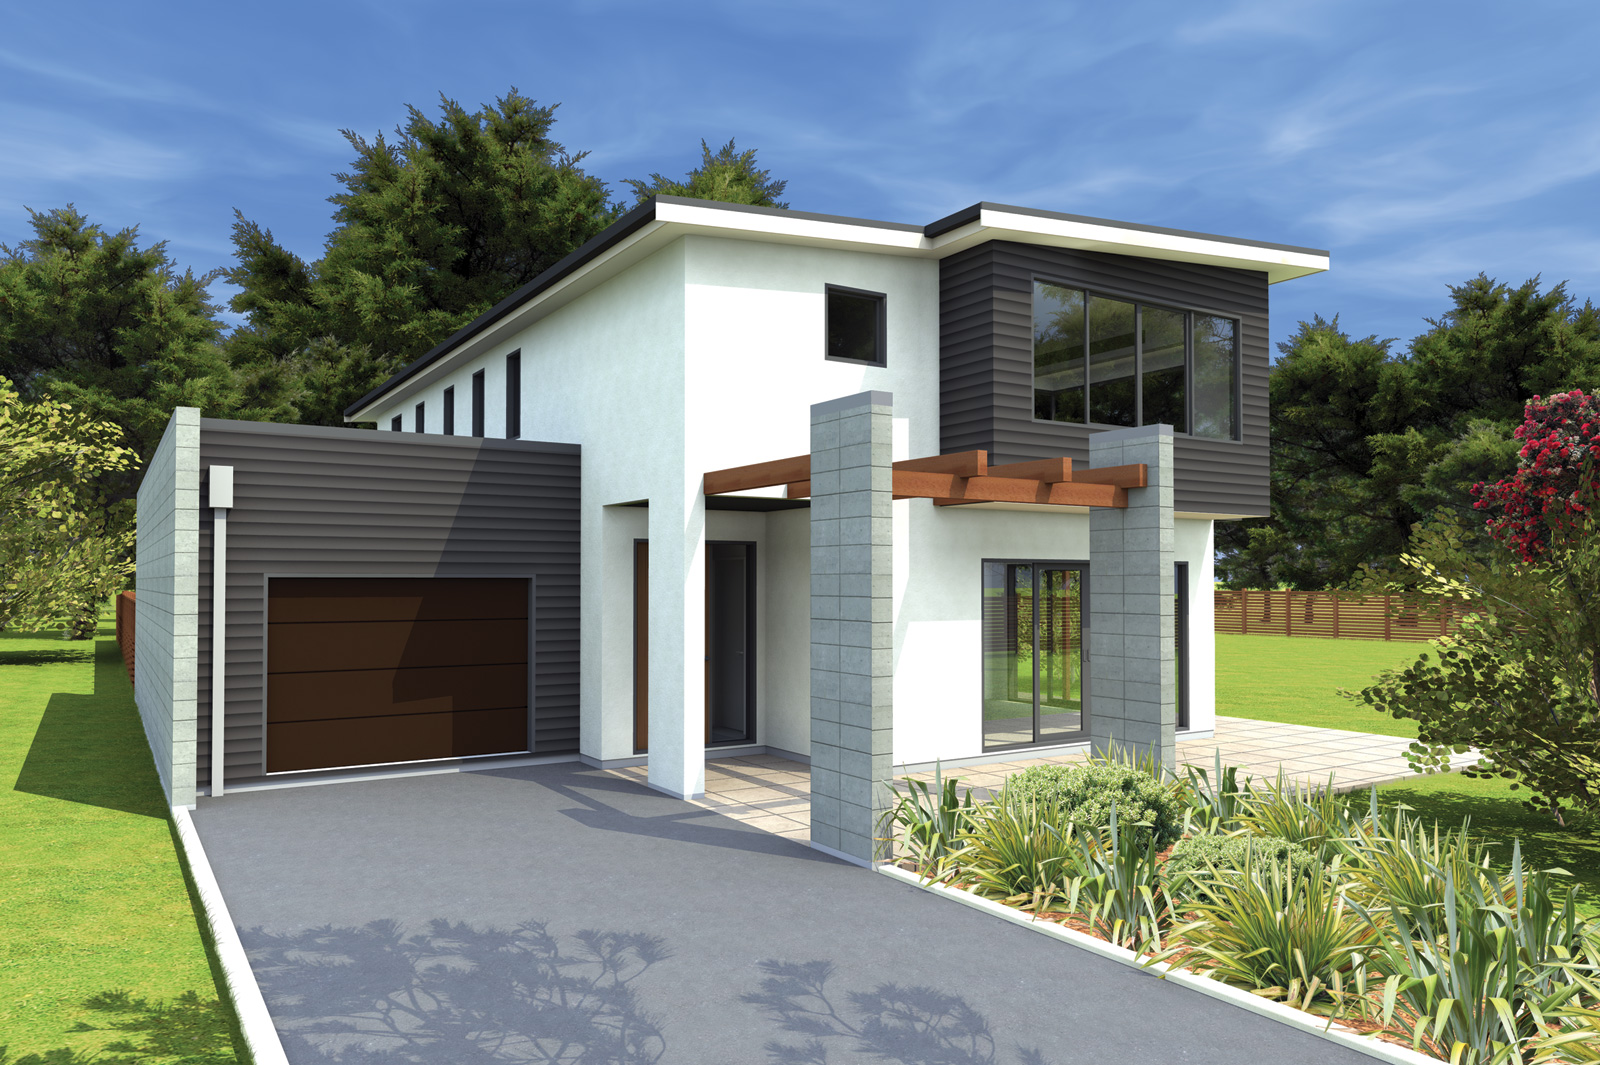 New home designs latest new modern homes designs new Modern home design